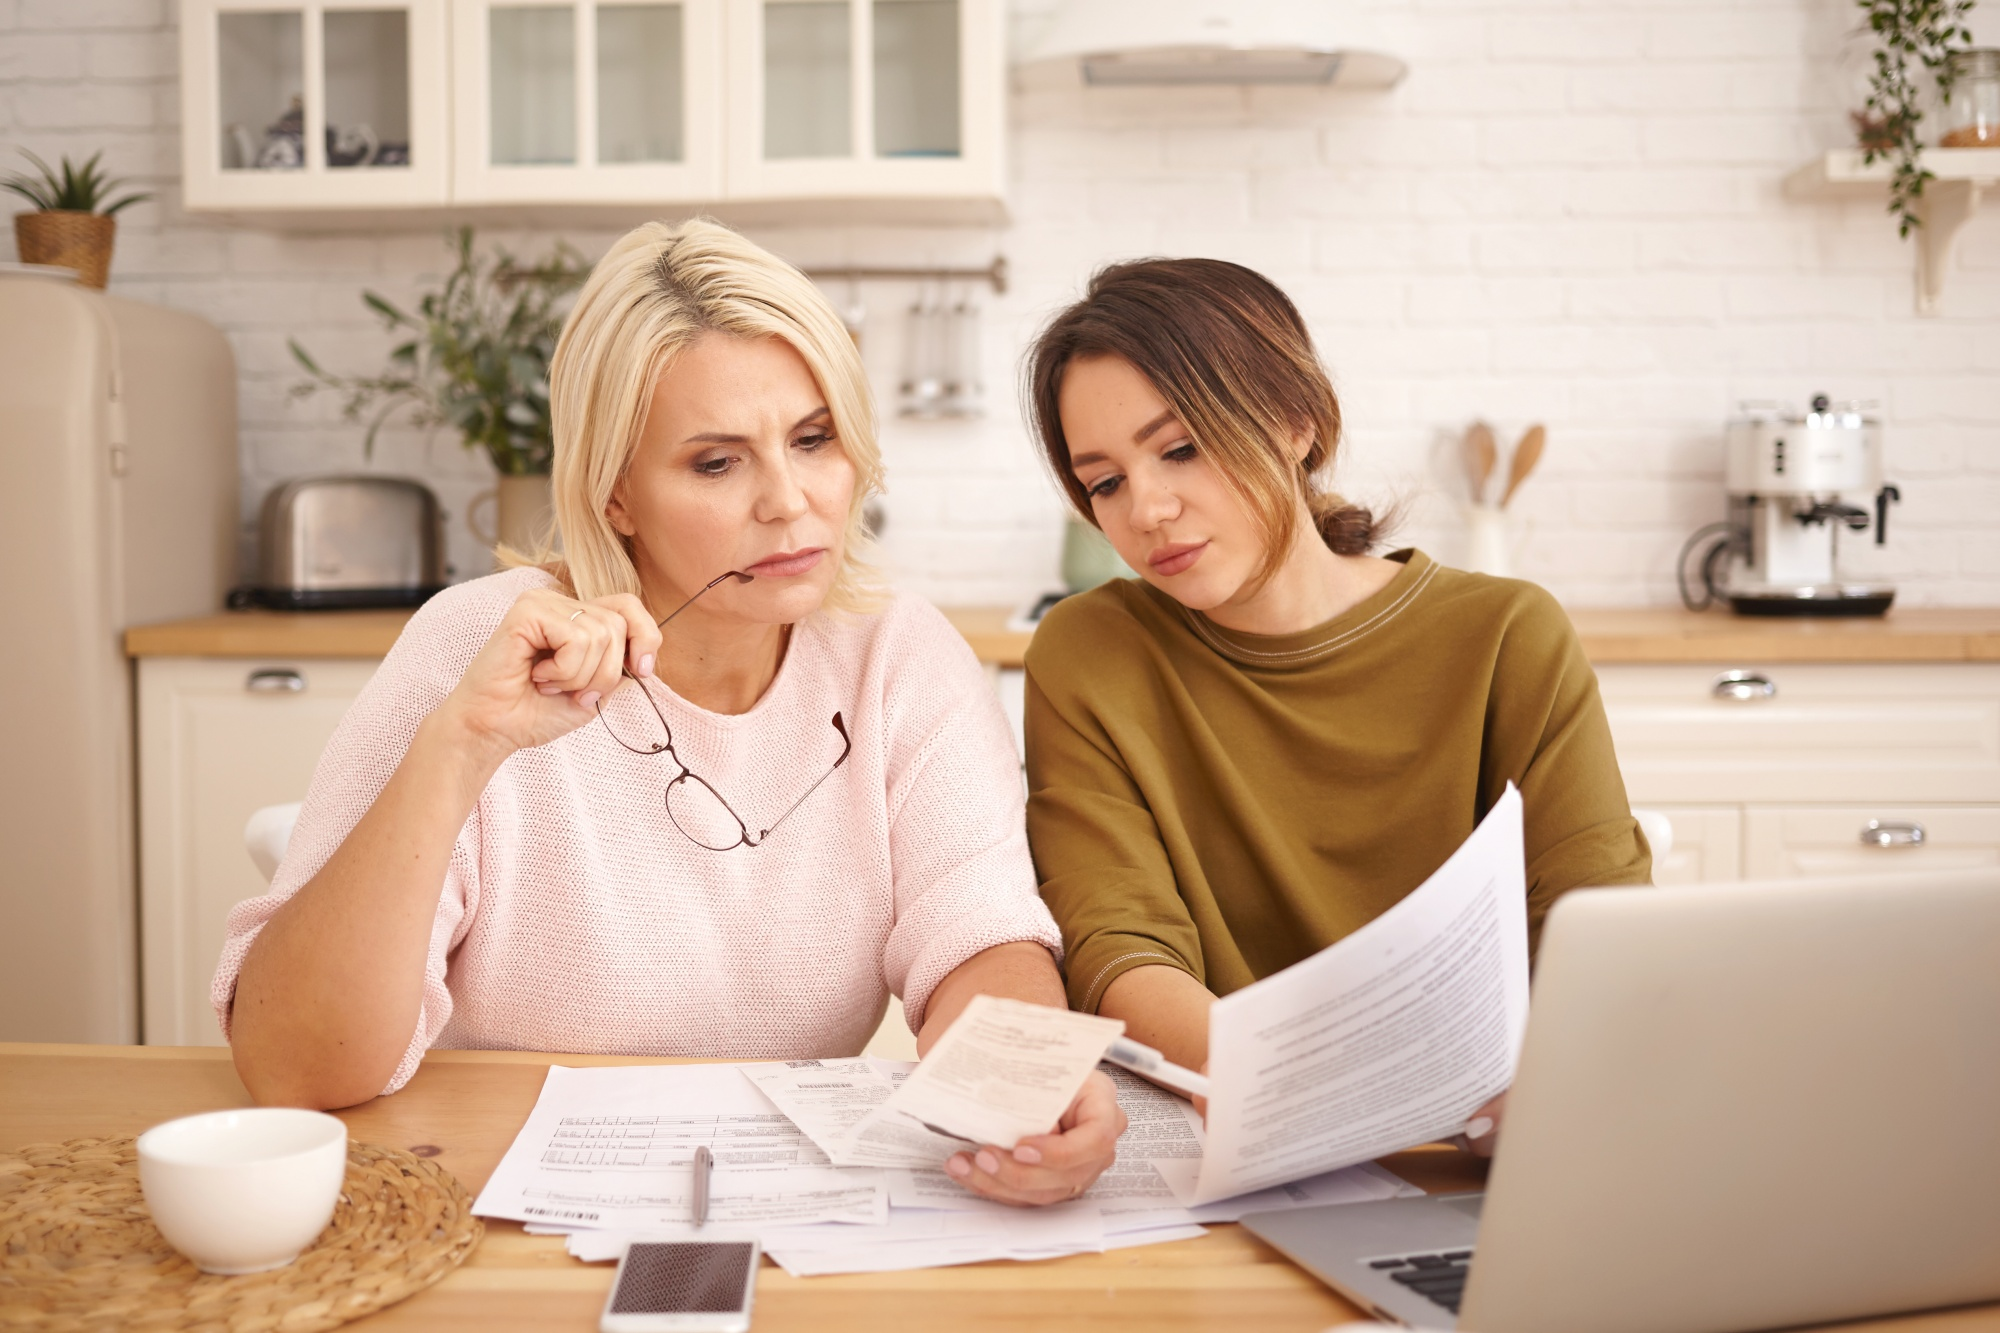 Teaching kids about money, mom and teen girl review expenses together at the kitchen table